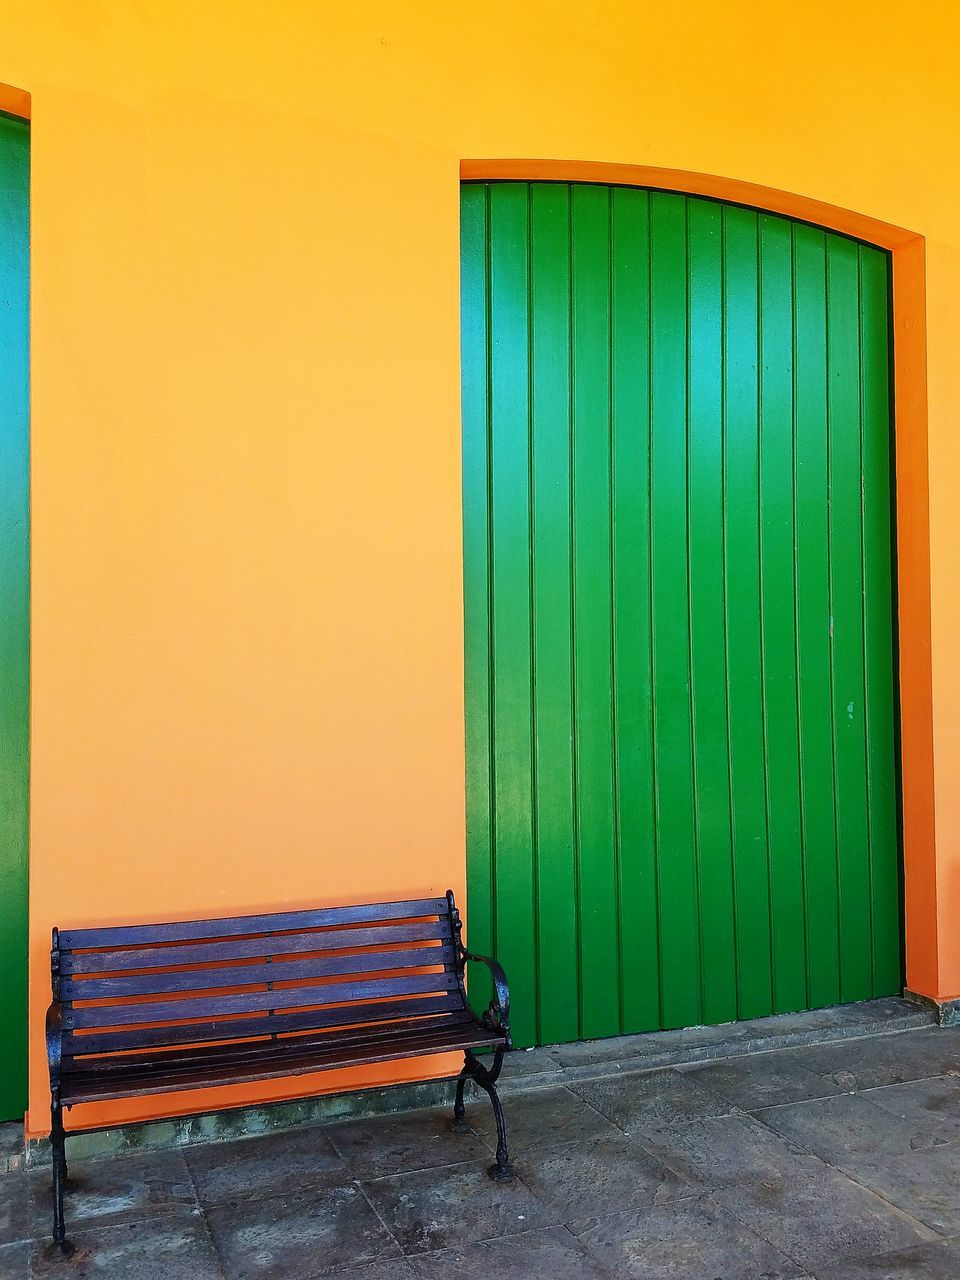 architecture, entrance, built structure, closed, wall - building feature, door, building exterior, day, security, empty, safety, protection, building, no people, wall, orange color, shutter, green color, outdoors, iron